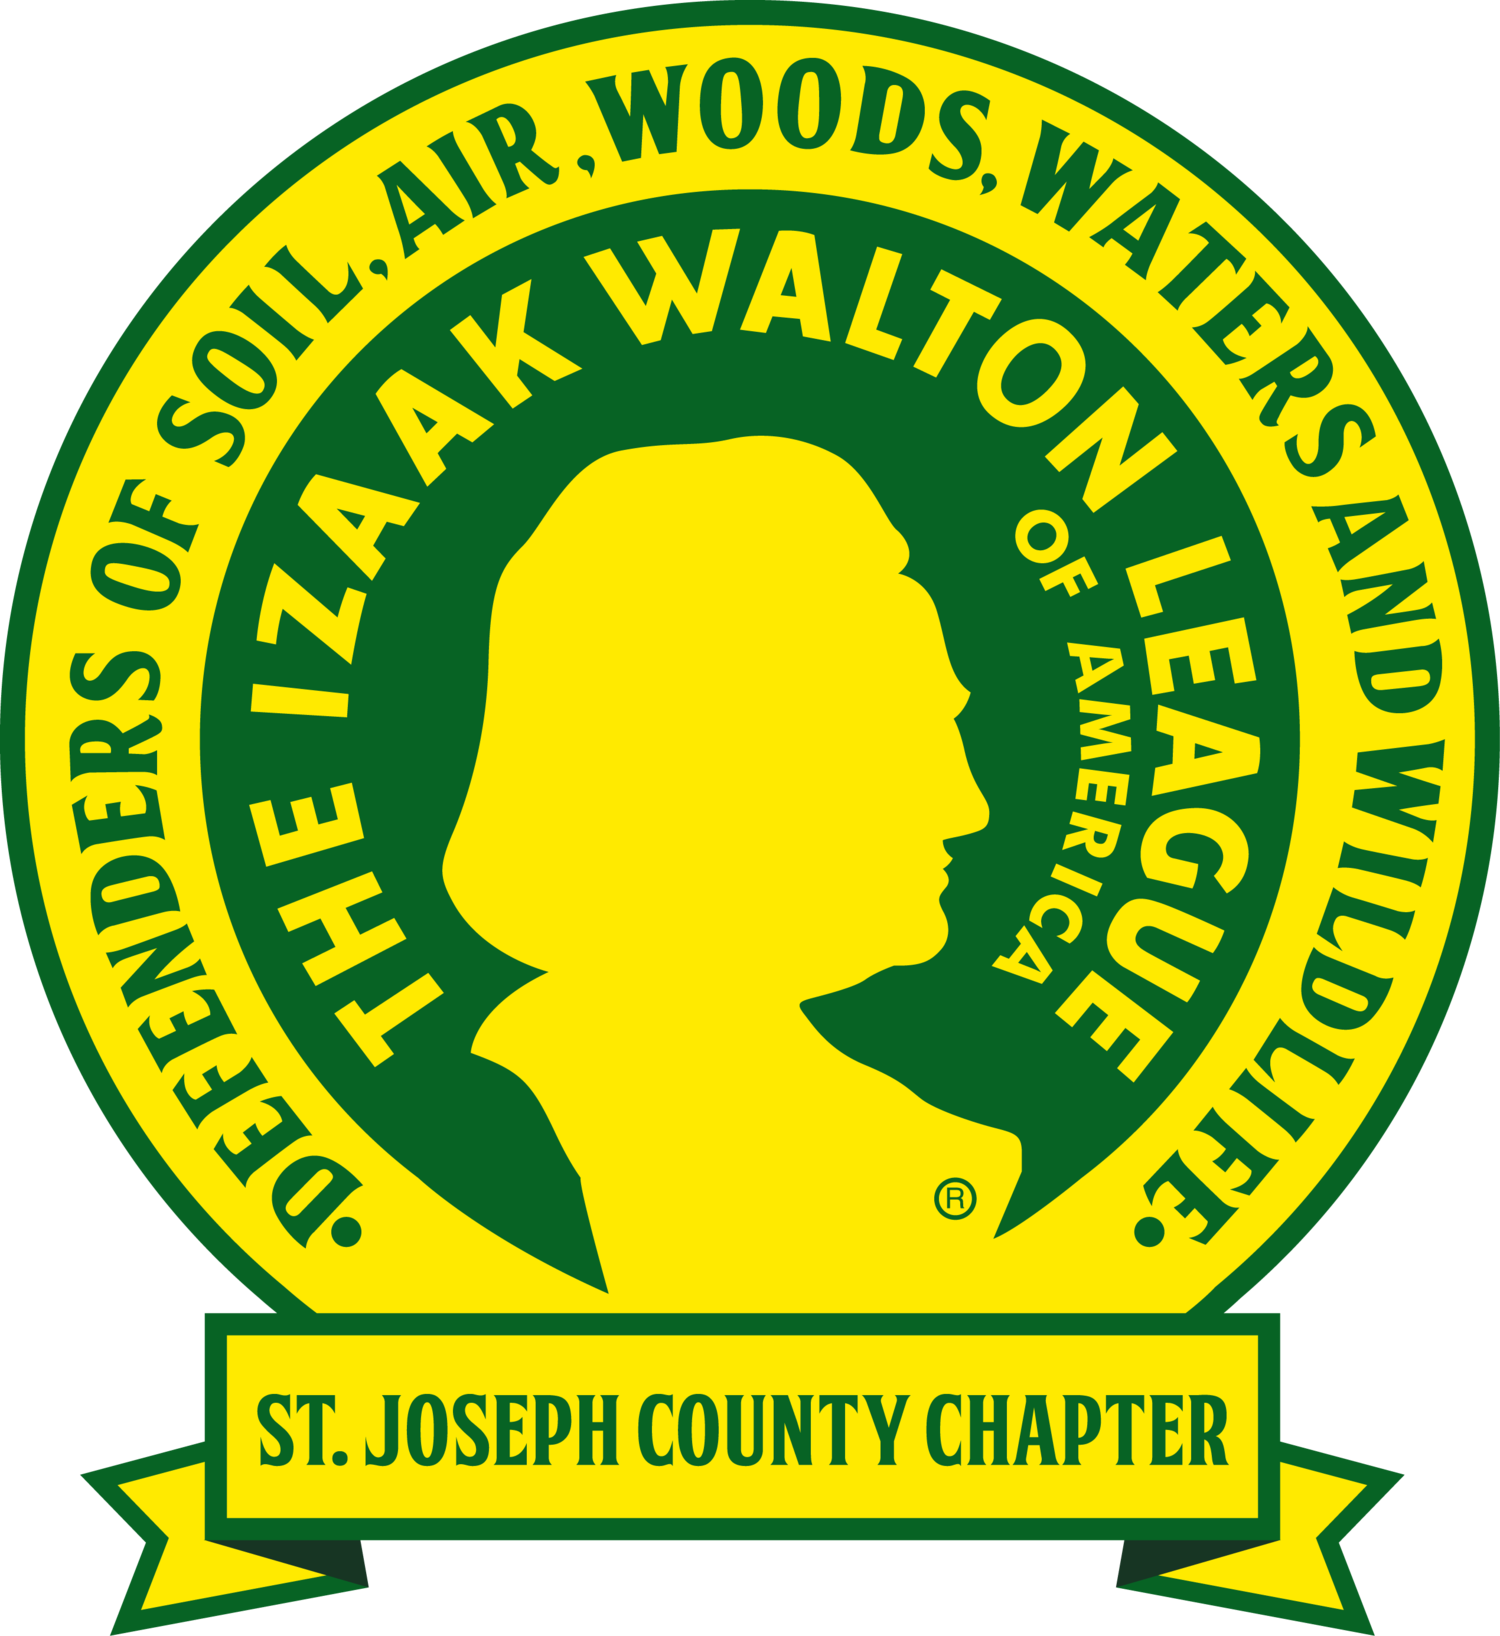 Izaak Walton League of America